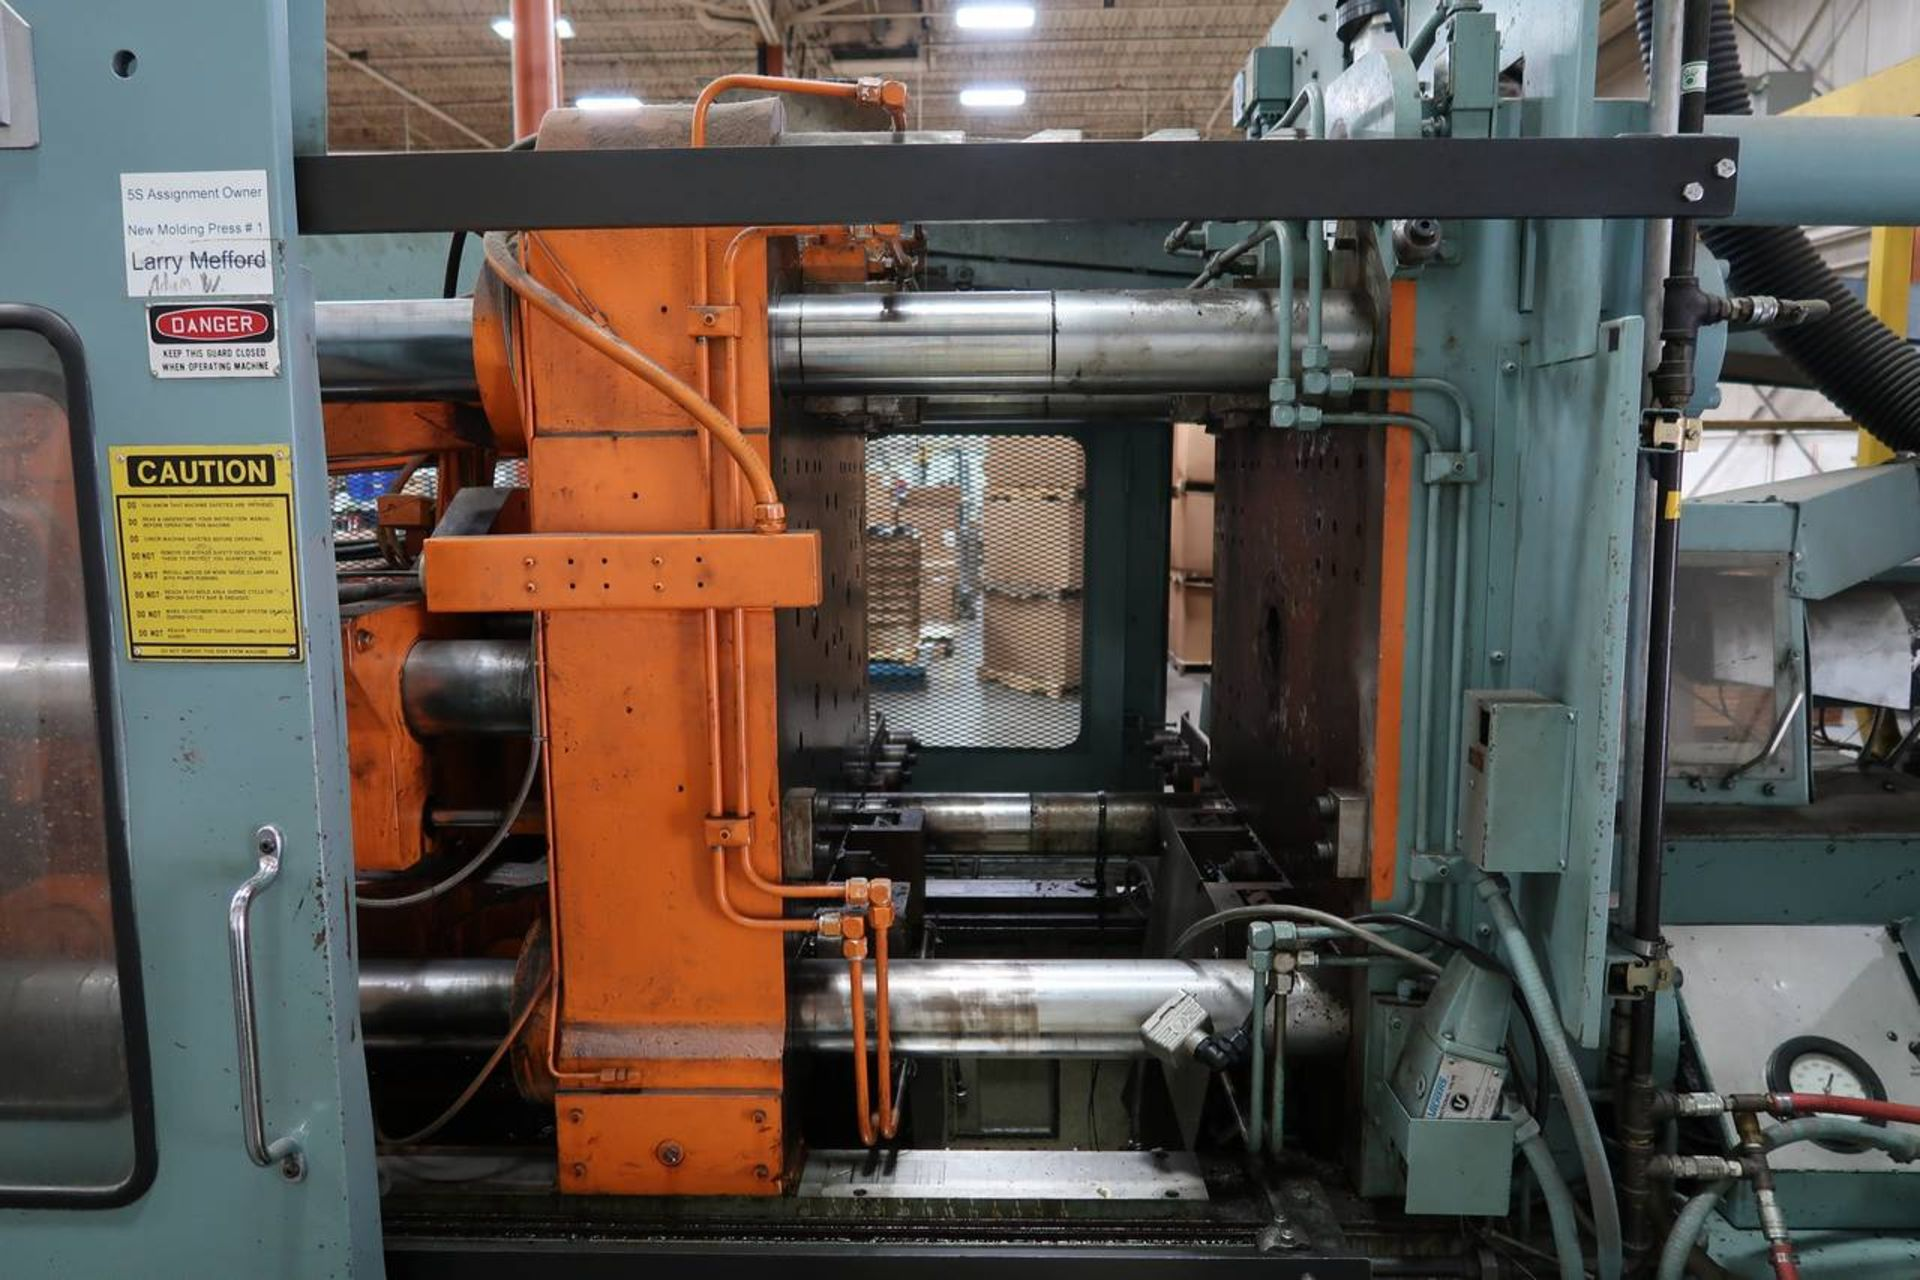 1986 HPM 400-TP-20 400-Ton Thermo Plastic Injection Molding Press - Image 7 of 40